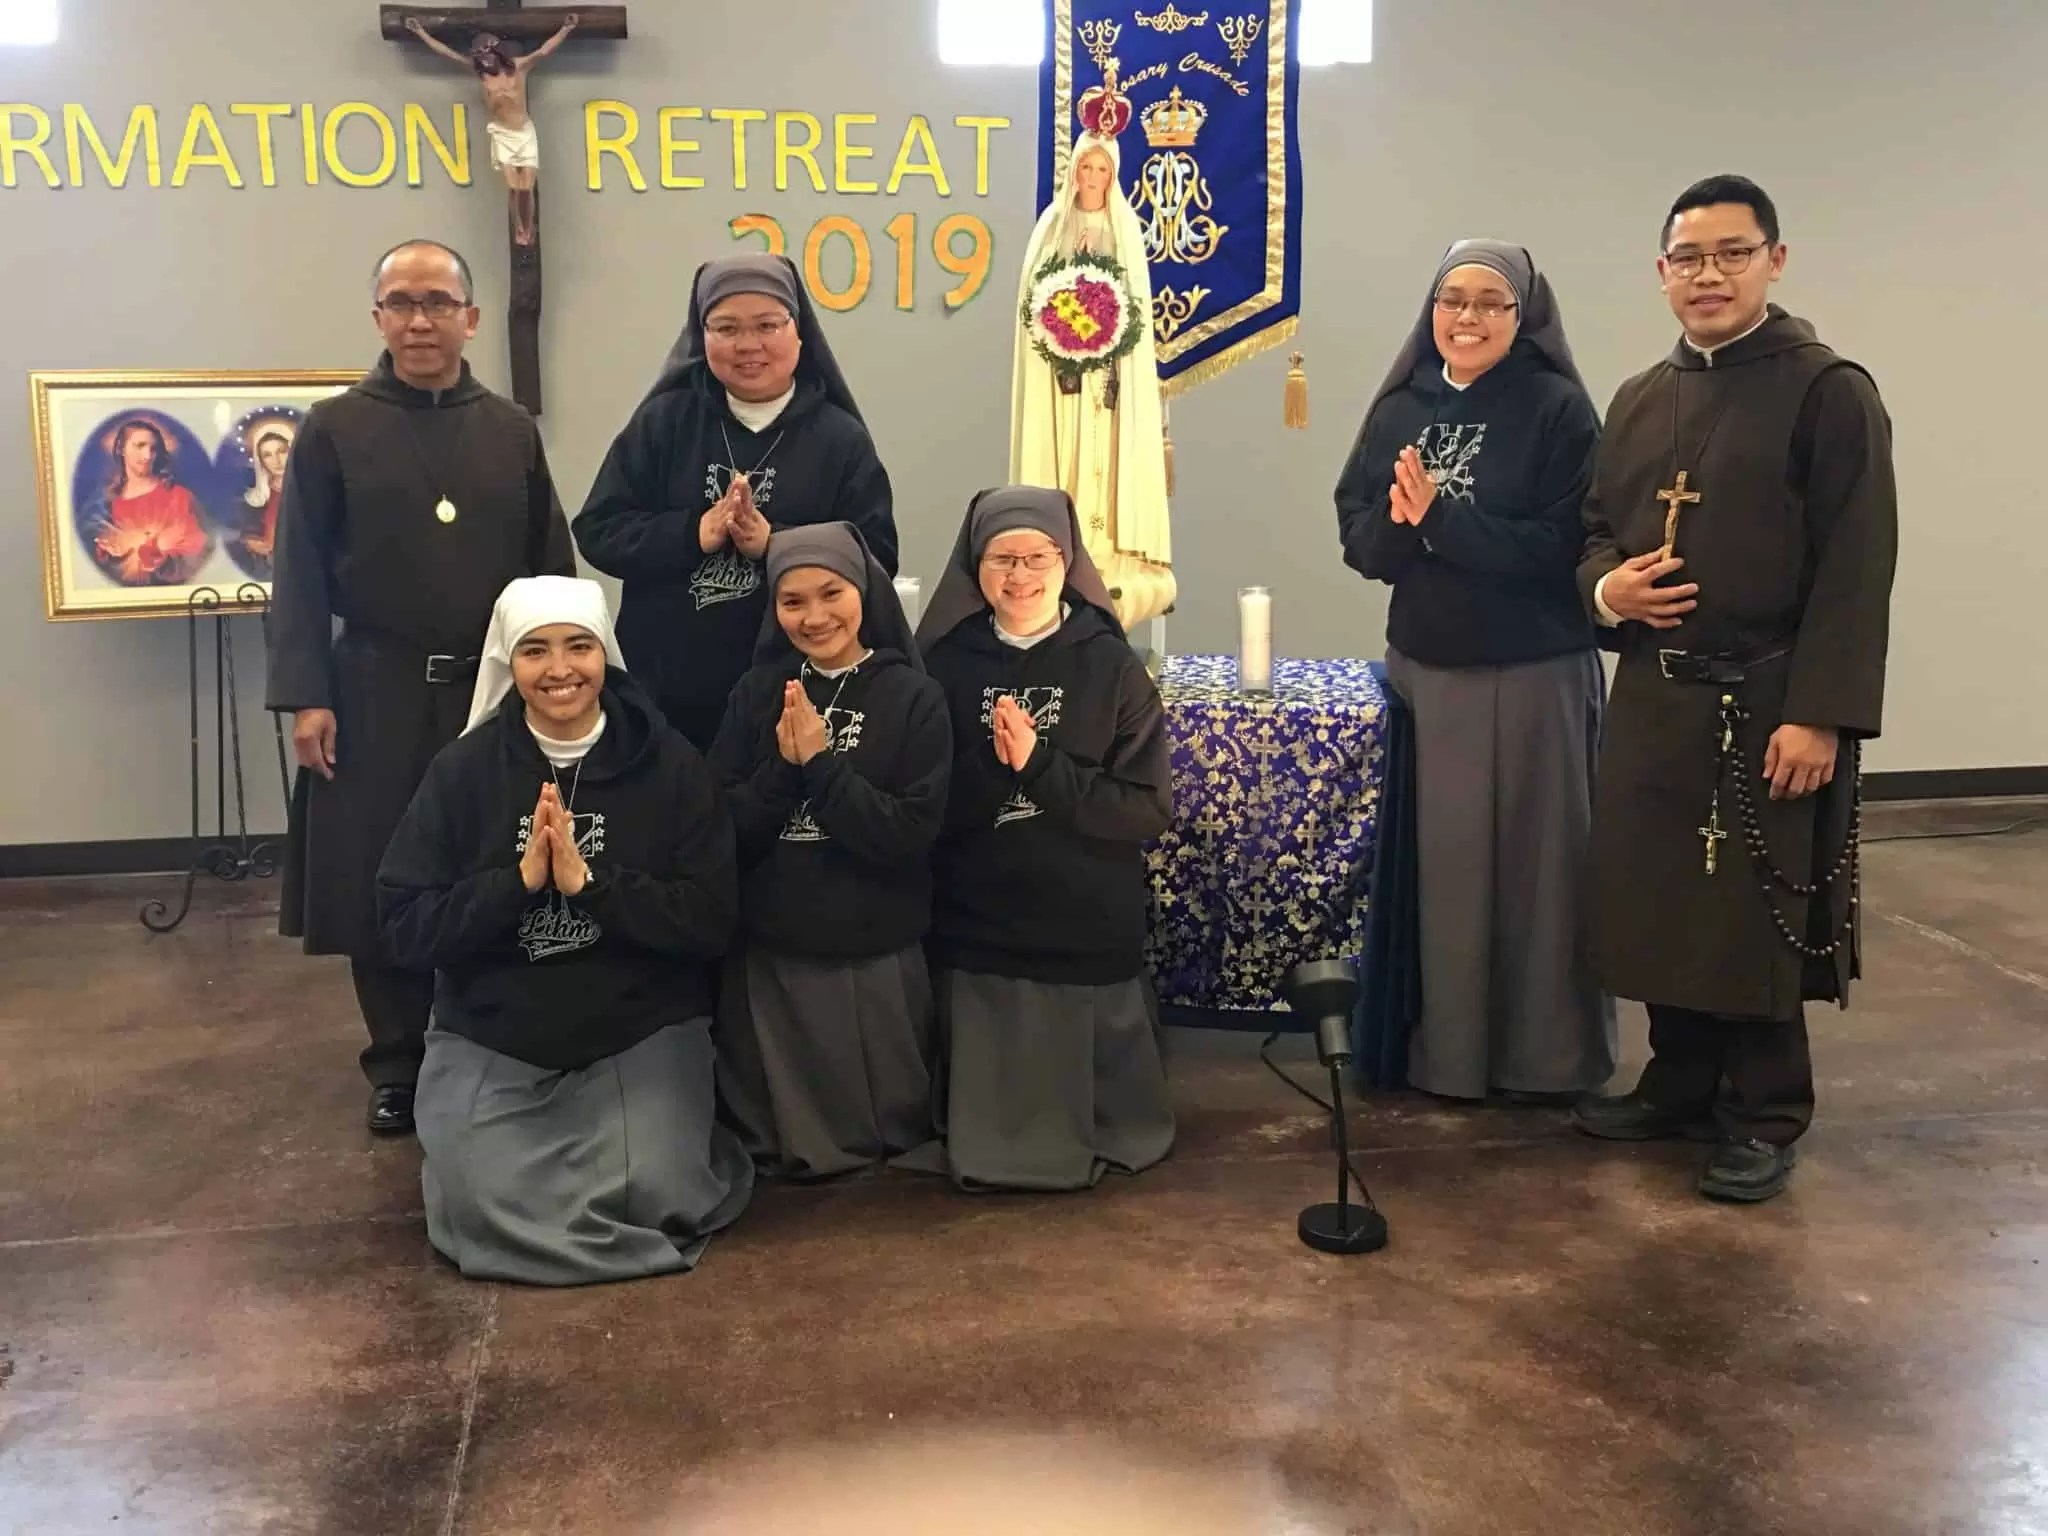 Brothers Julian and John with the SIsters at the retreat